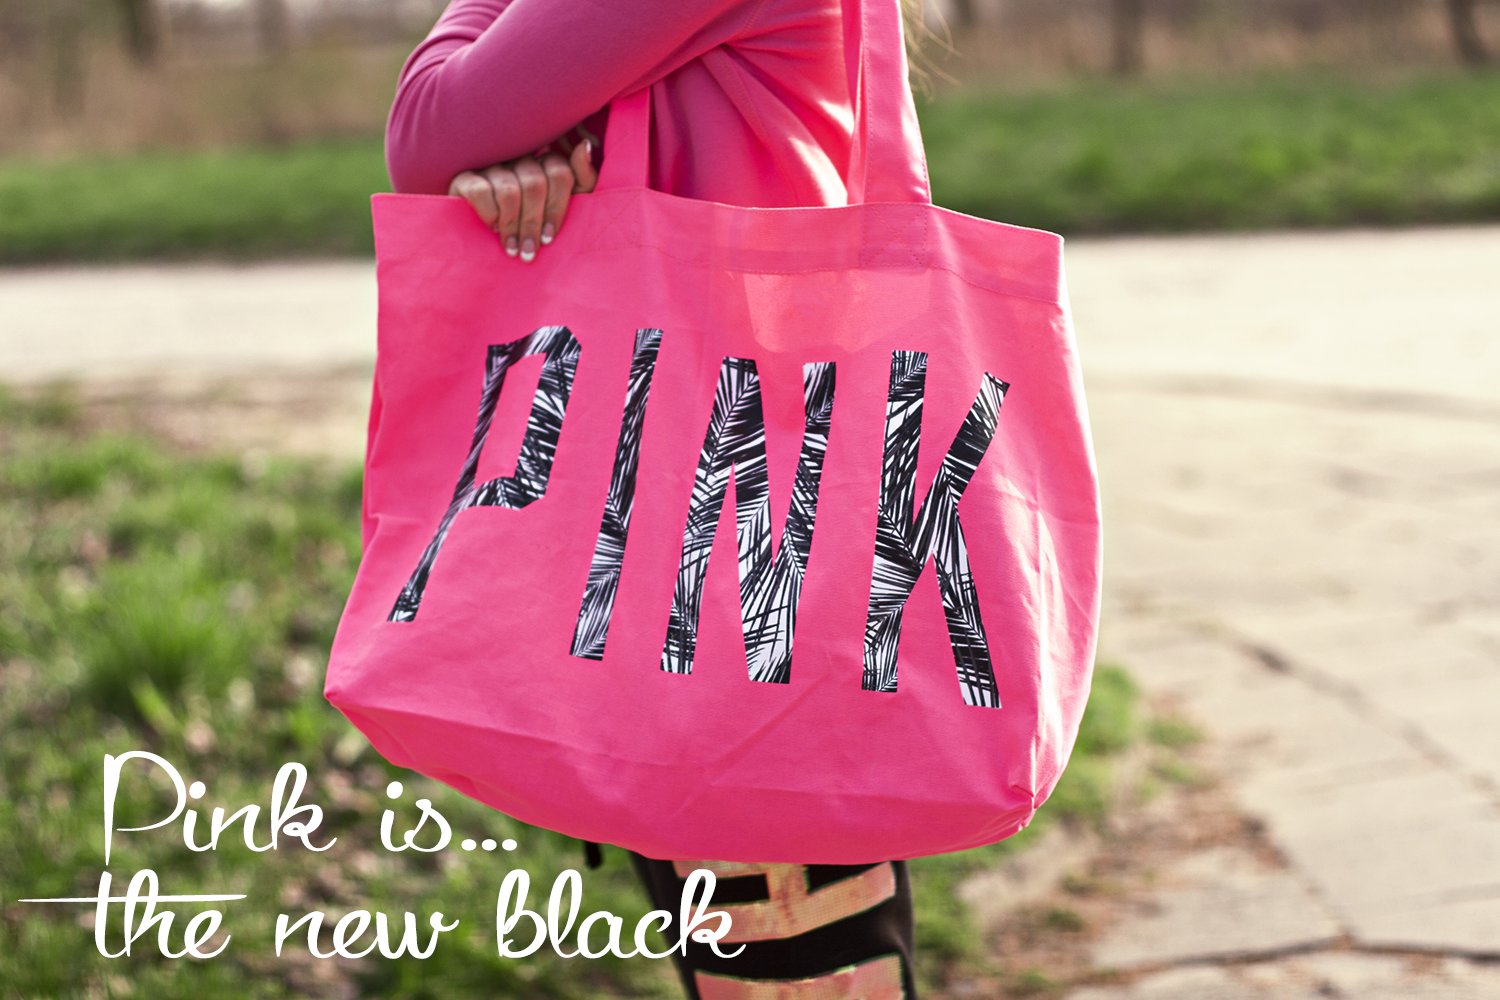 STYLE: pink is the new black